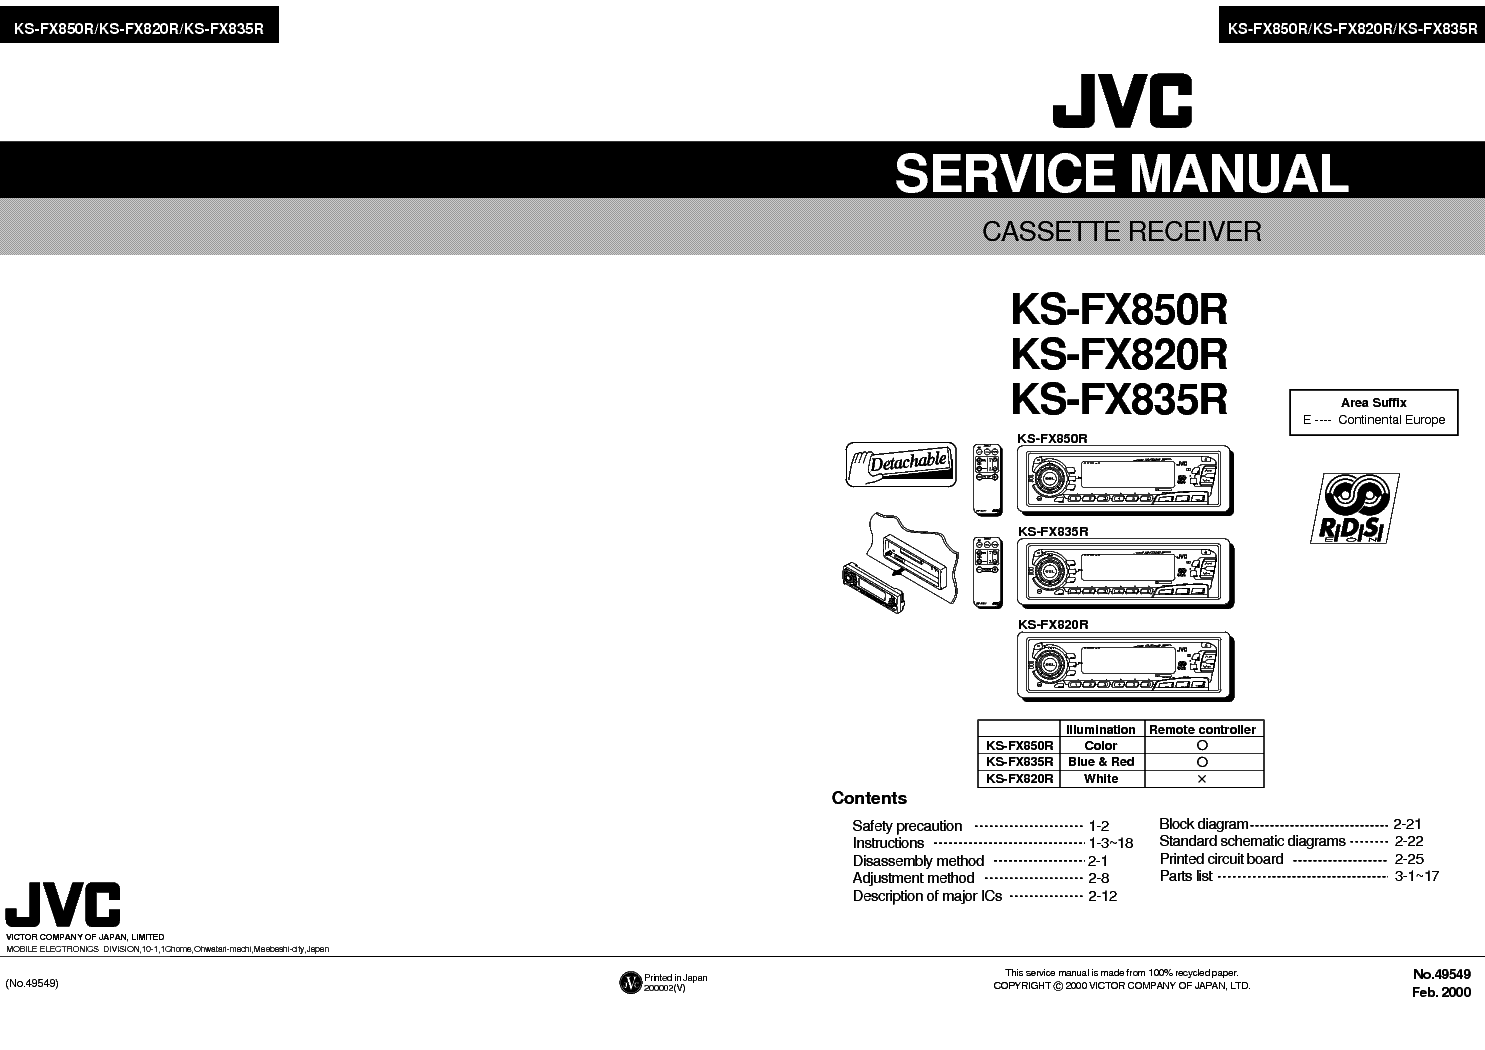 JVC KS-FX820R FX835R FX850R SM Service Manual download